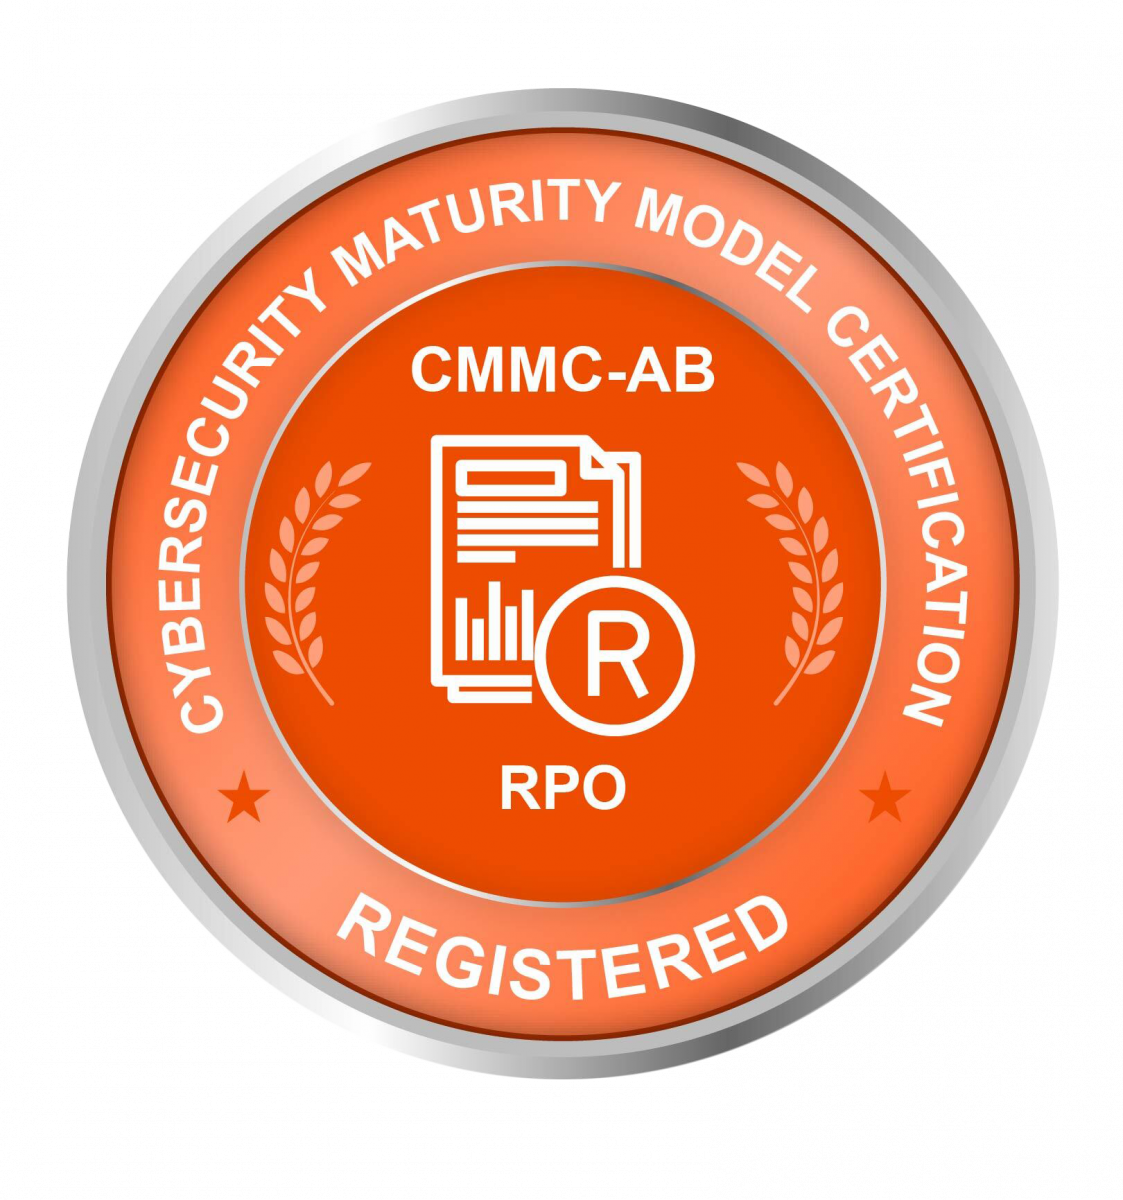 https://cmmc-certification.com/